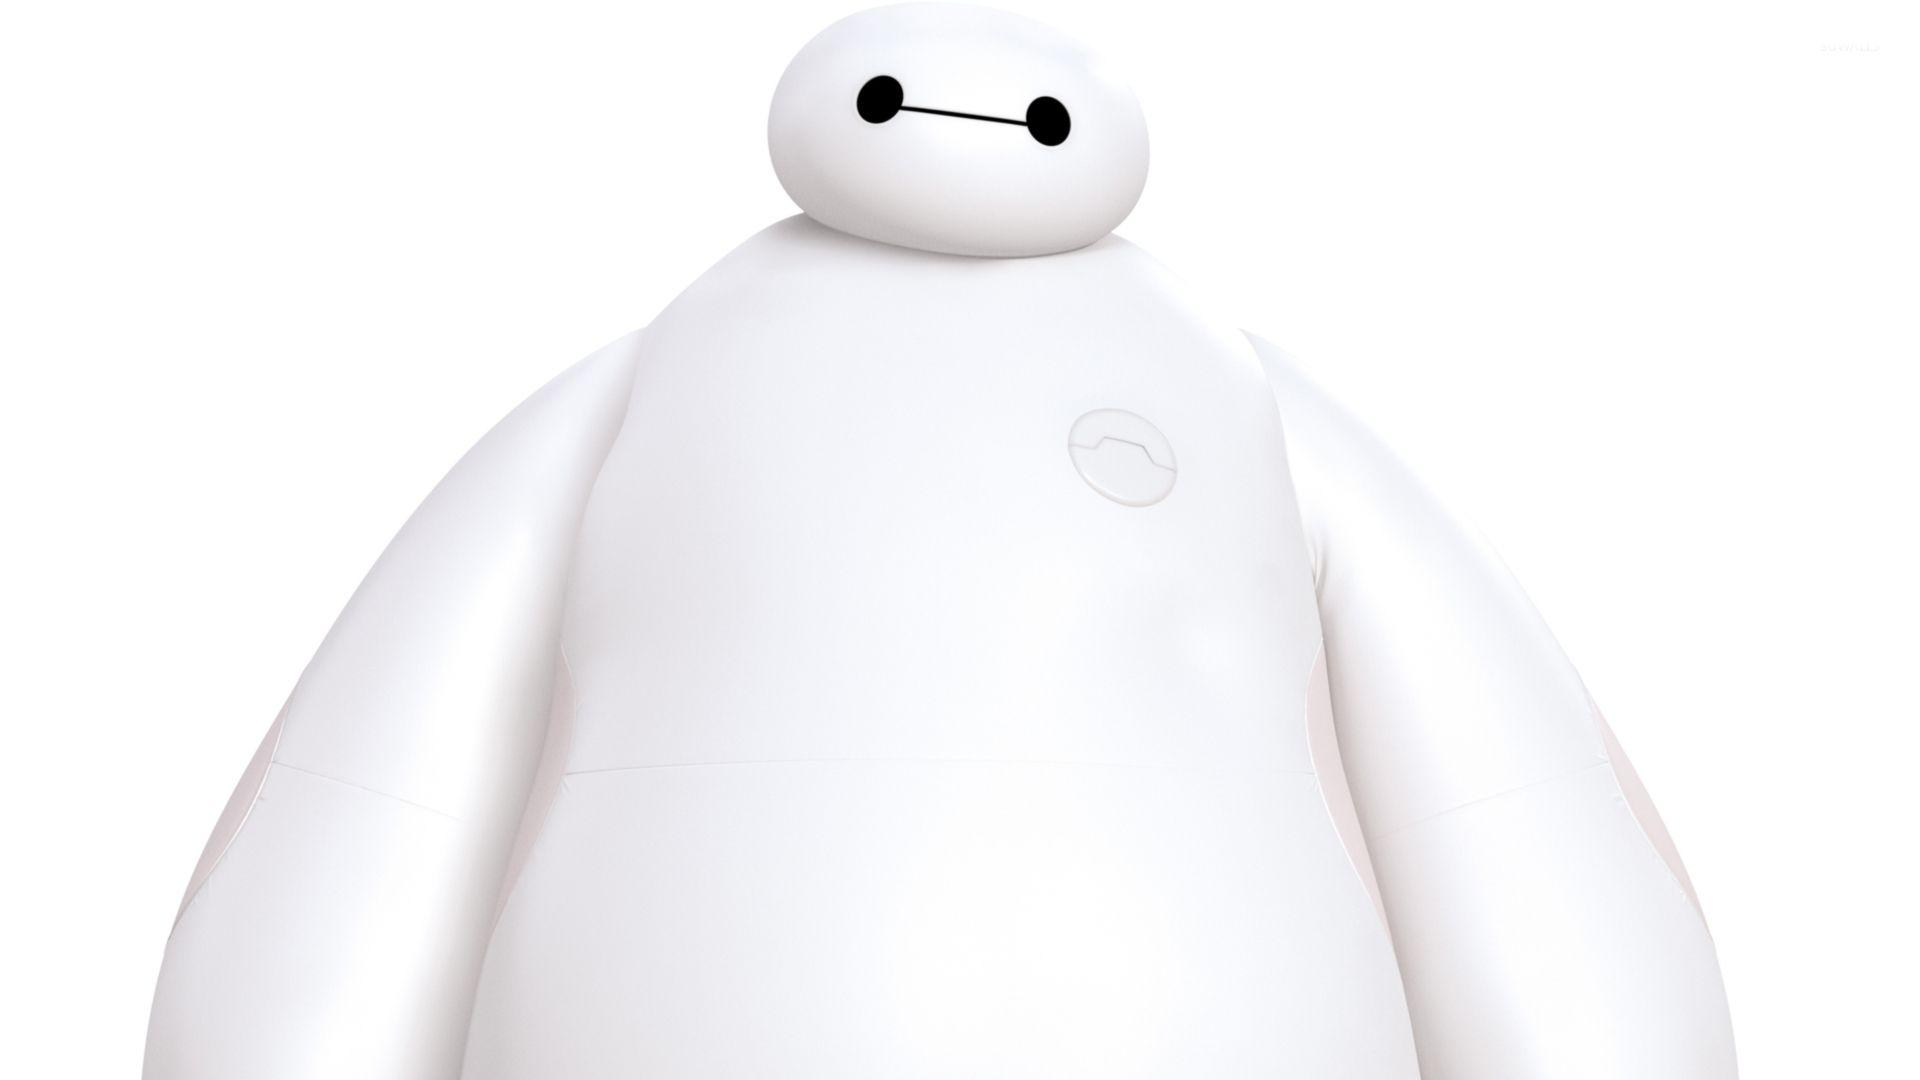 Baymax - Big Hero 6 wallpaper - Cartoon wallpapers - #35056